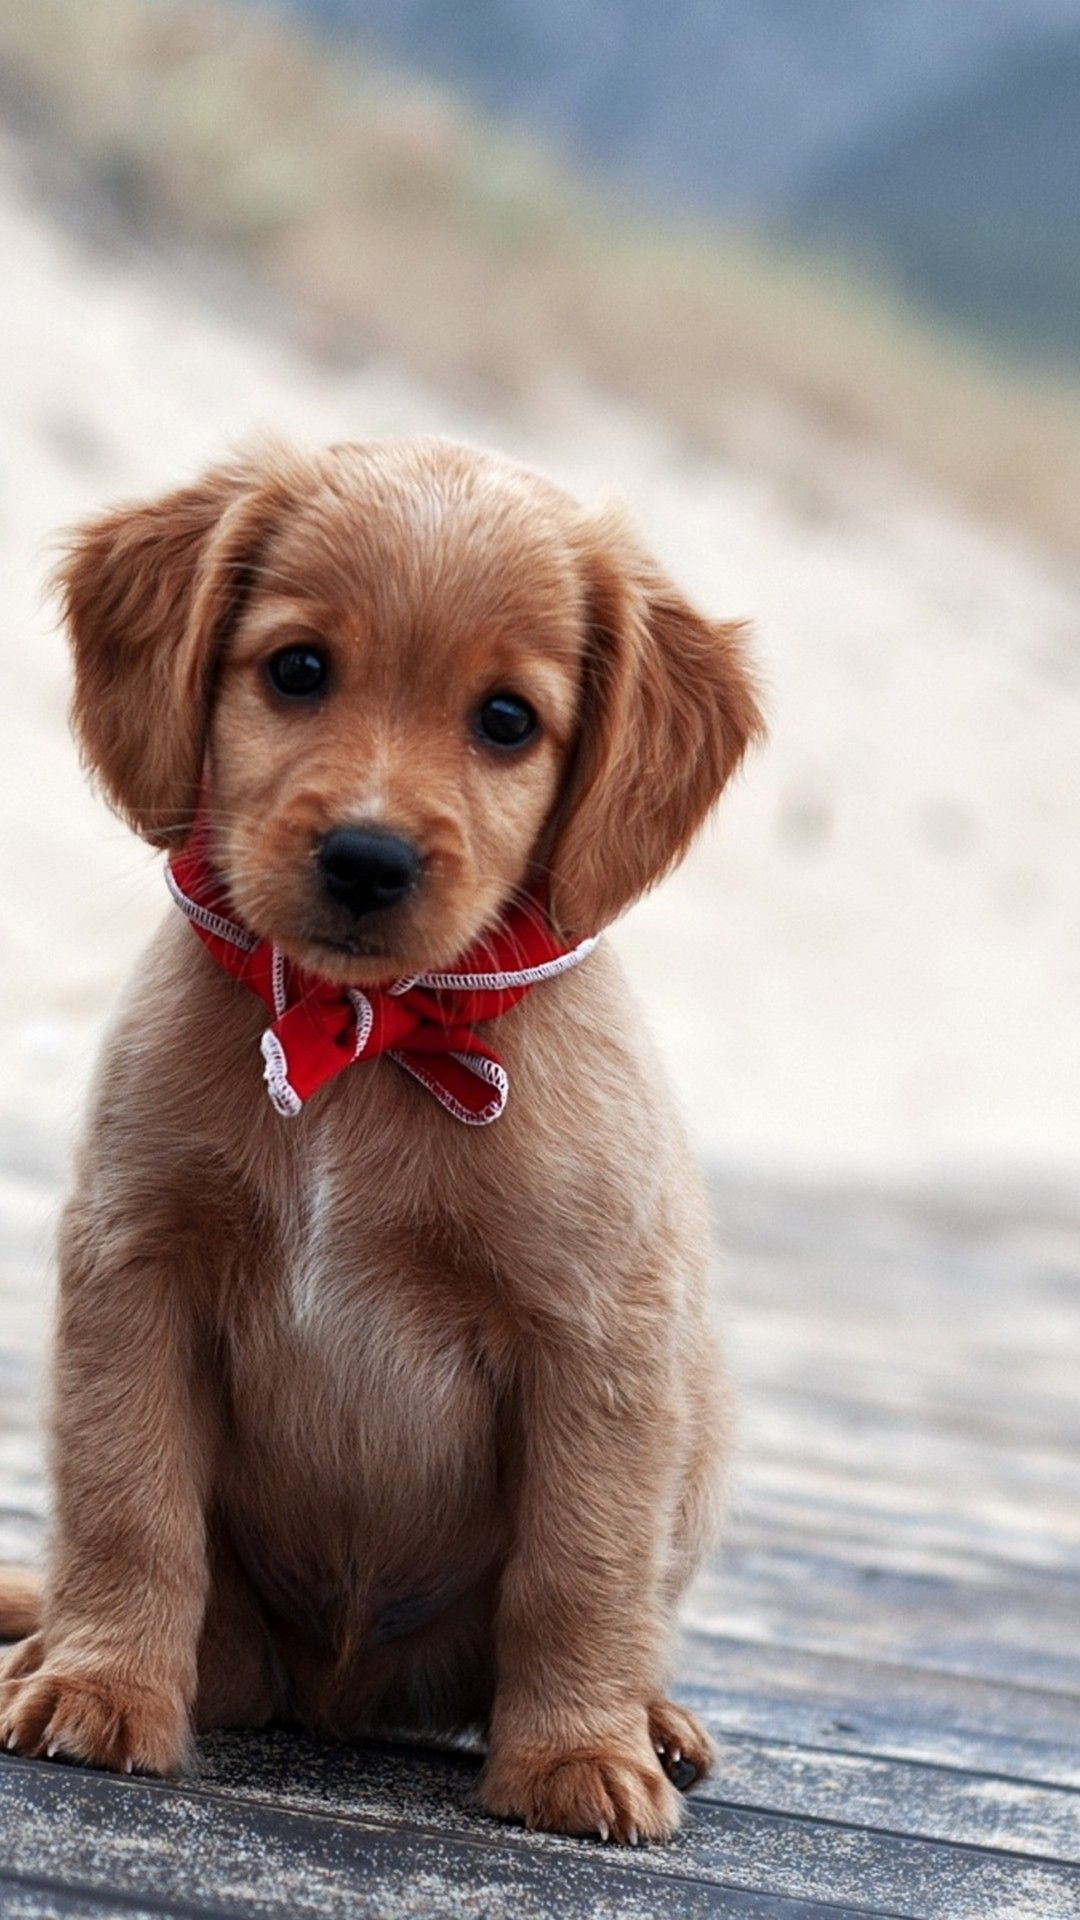 Pics Of Puppies Wallpaper Android - Best Android Wallpapers